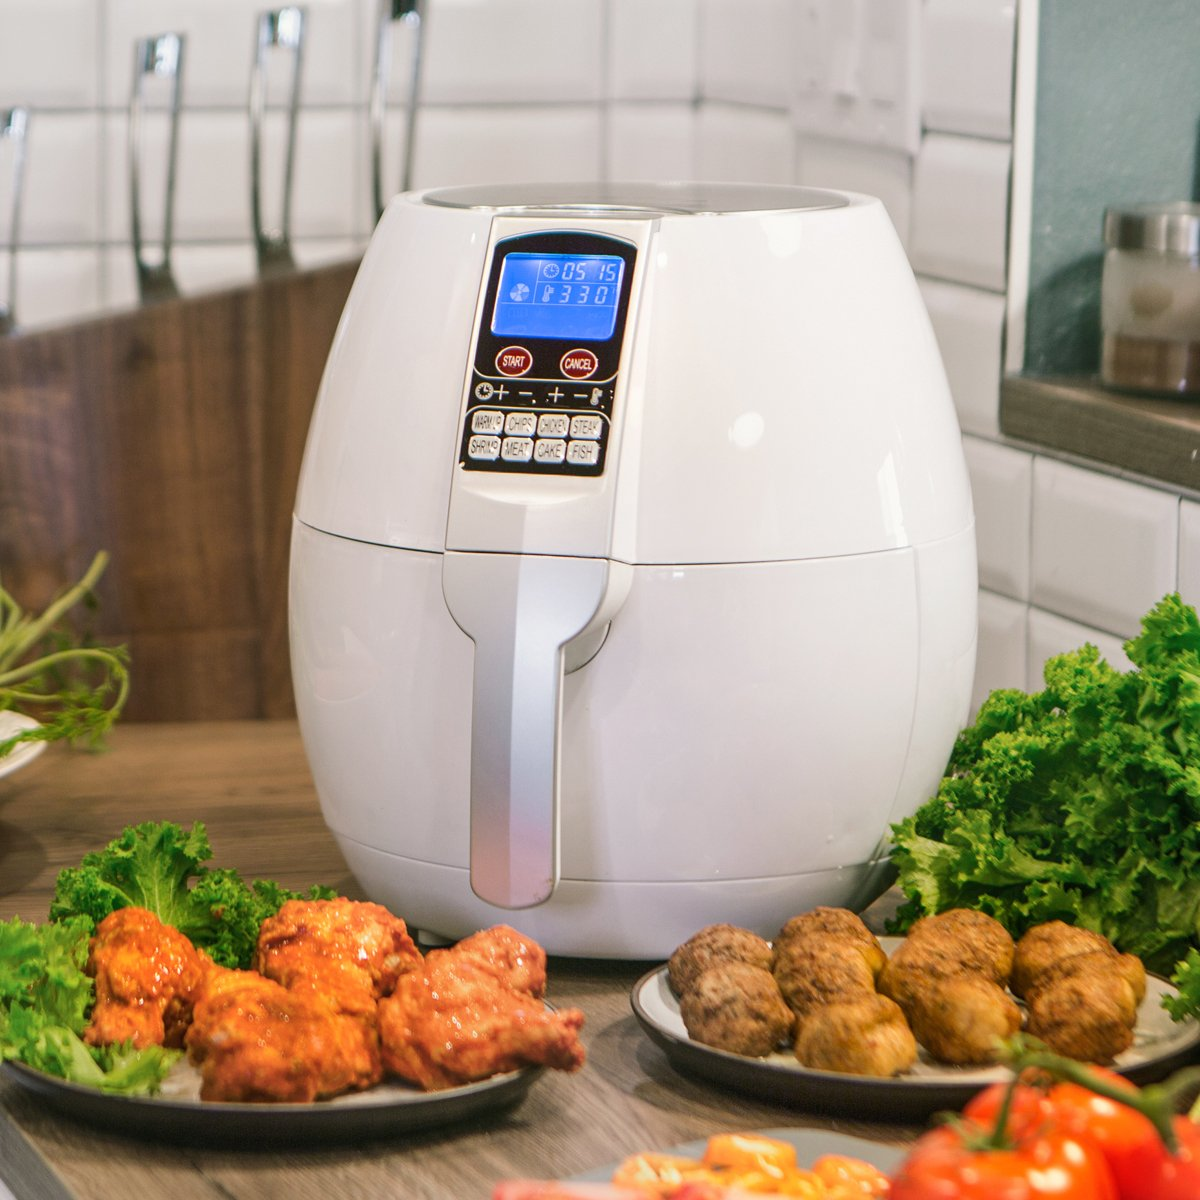 Ensue 3.7 Quart XL Air Fryer Oil-free 1500 Watt Cooker Control Panel LCD w Recipes Book, White